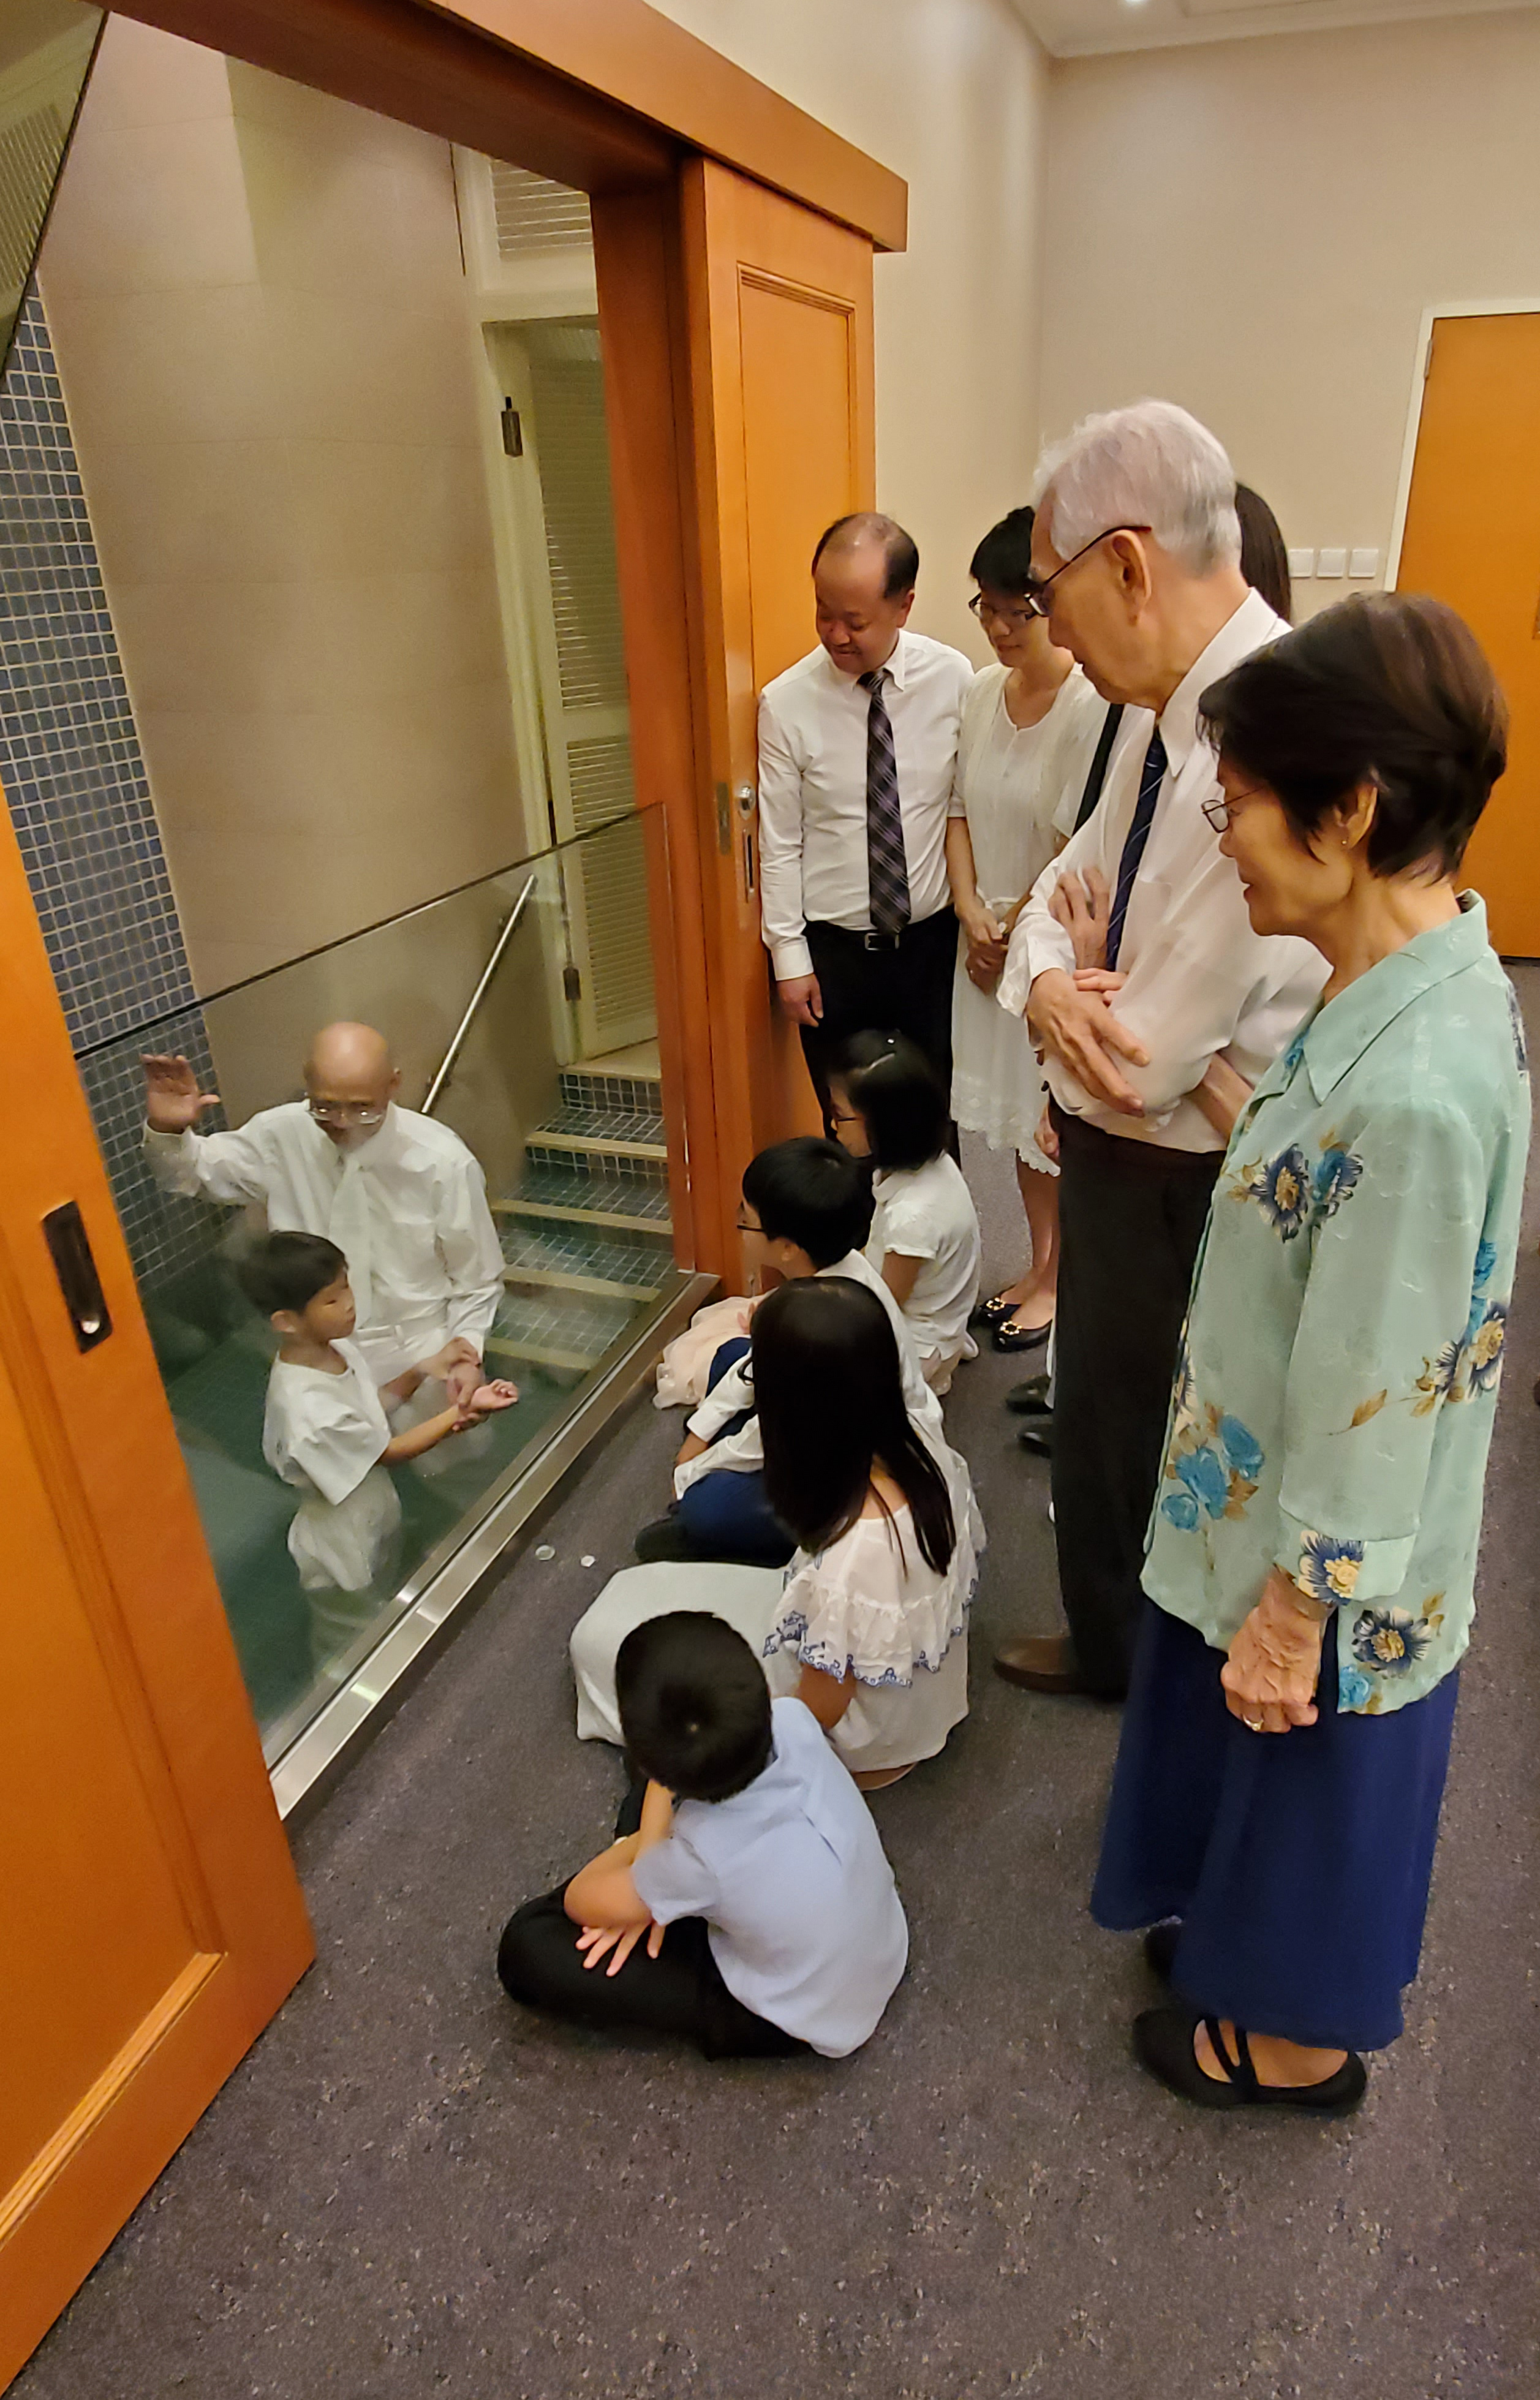 Women and children who are baptized can now serve as witnesses to baptisms, the Church announced Oct. 2, 2019. Worthy temple recommend holders, including youth with limited use recommends, can also witness baptisms in the temple. Additionally, women who are endowed can serve as witnesses to temple sealings.